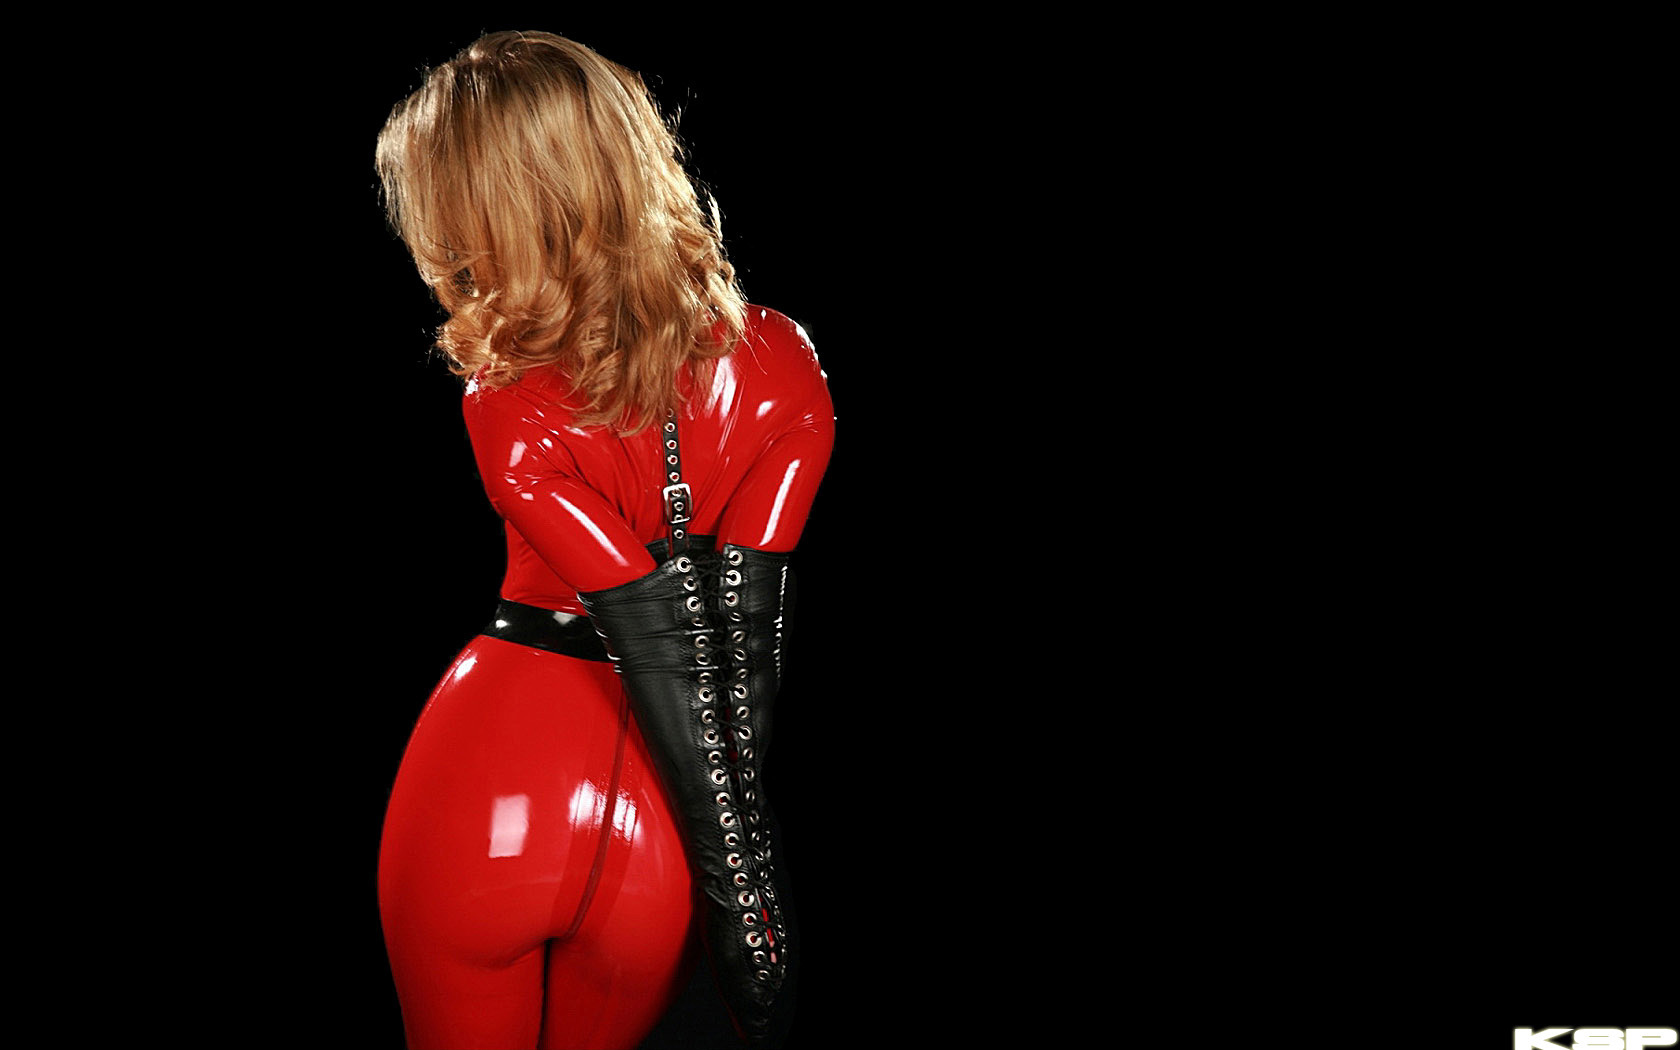 leather red bondage ancilla HD Wallpaper